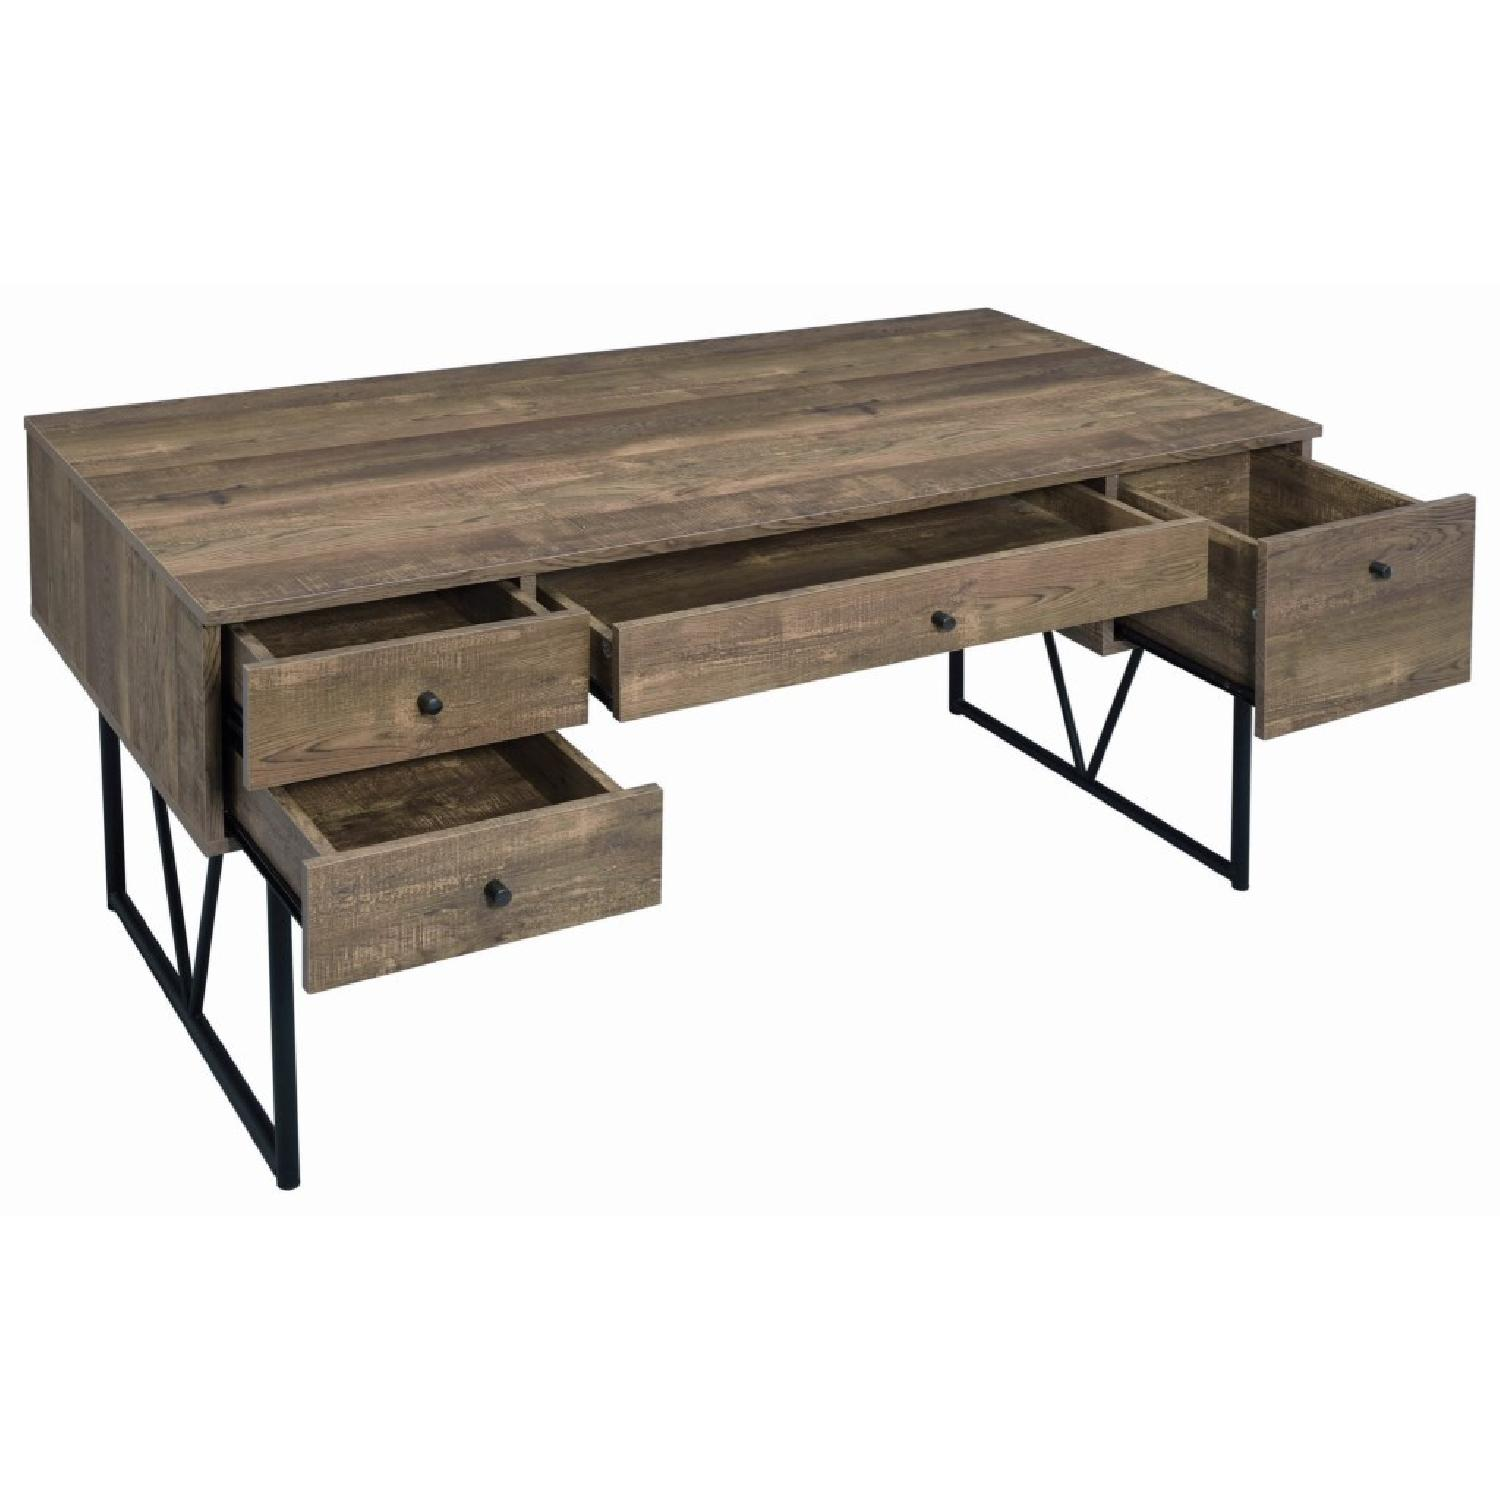 Rustic Oak Desk w/ Black Metal Frame Legs - image-7